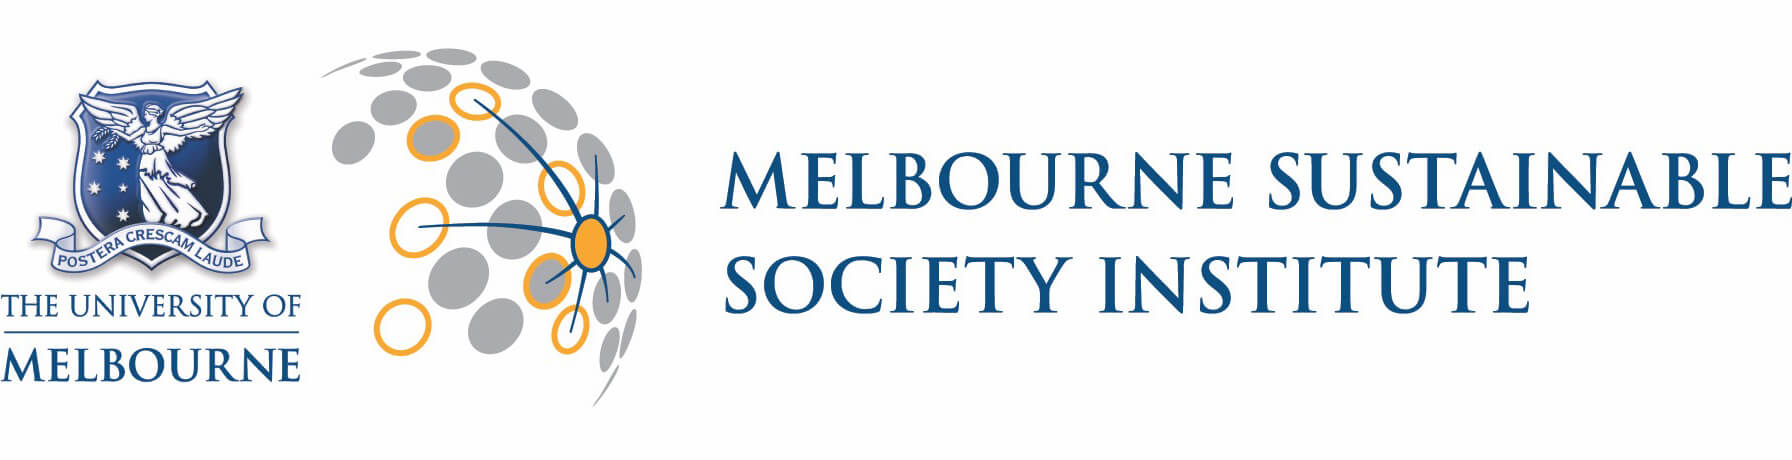 Melbourne Sustainable Society Institute